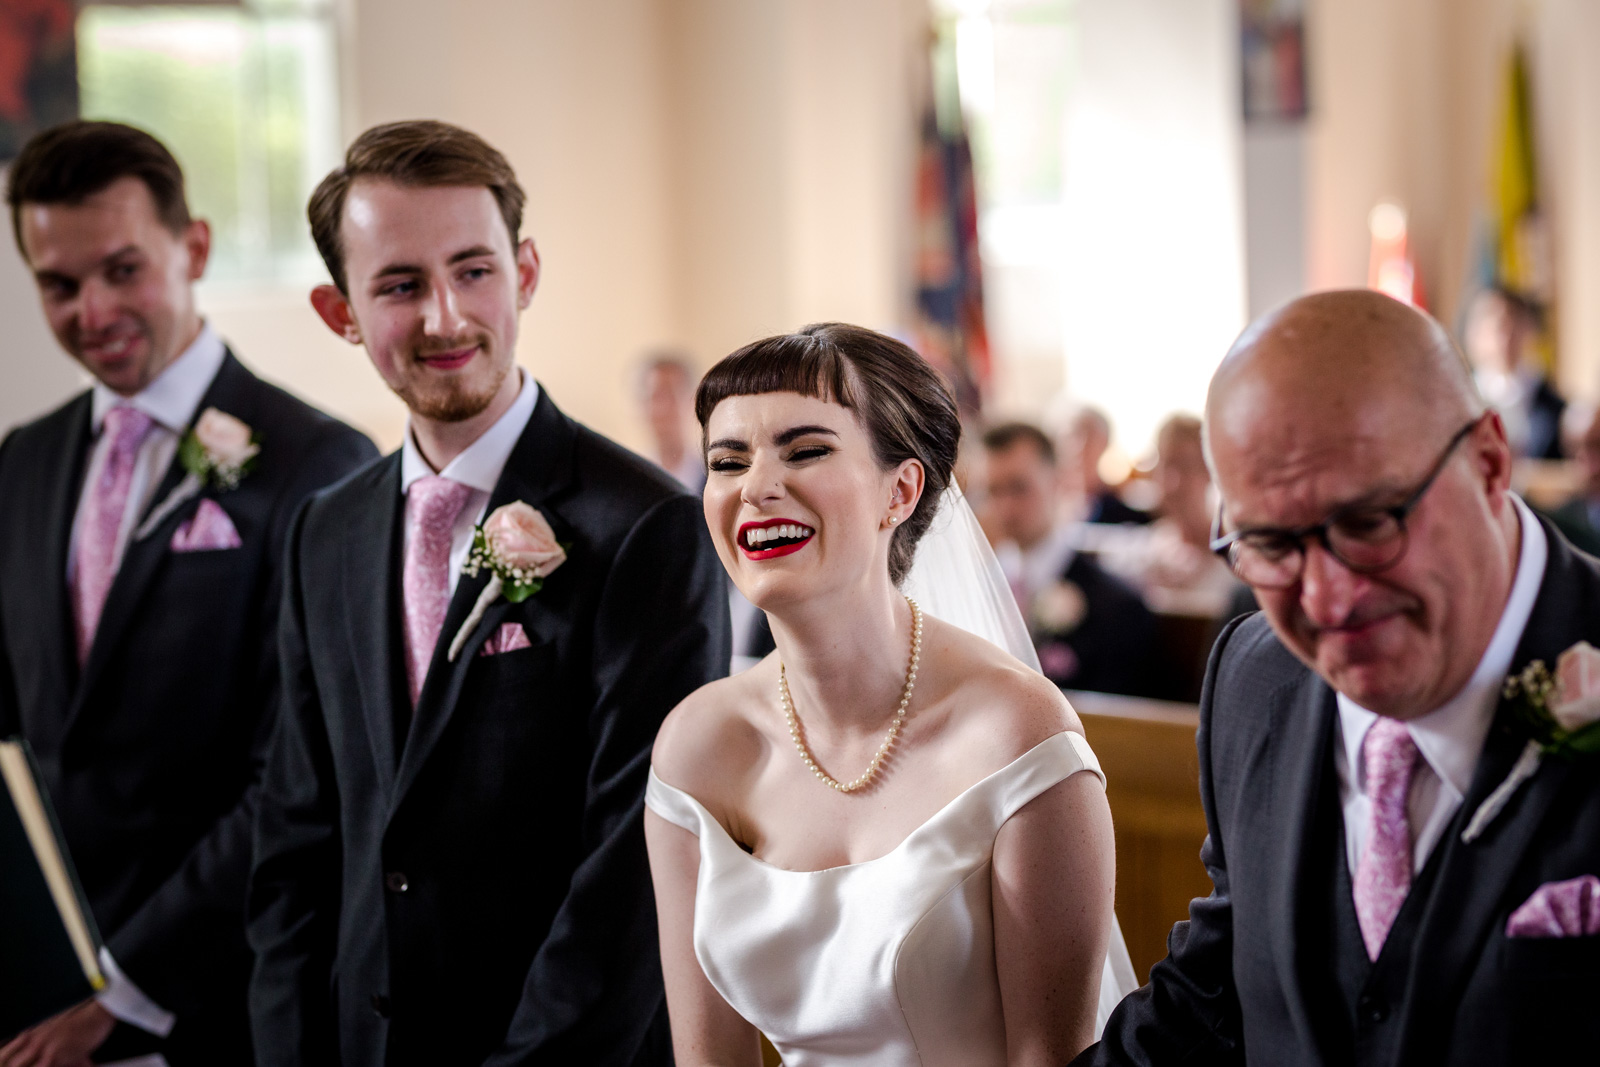 Bride and groom during their church wedding in Lancashire